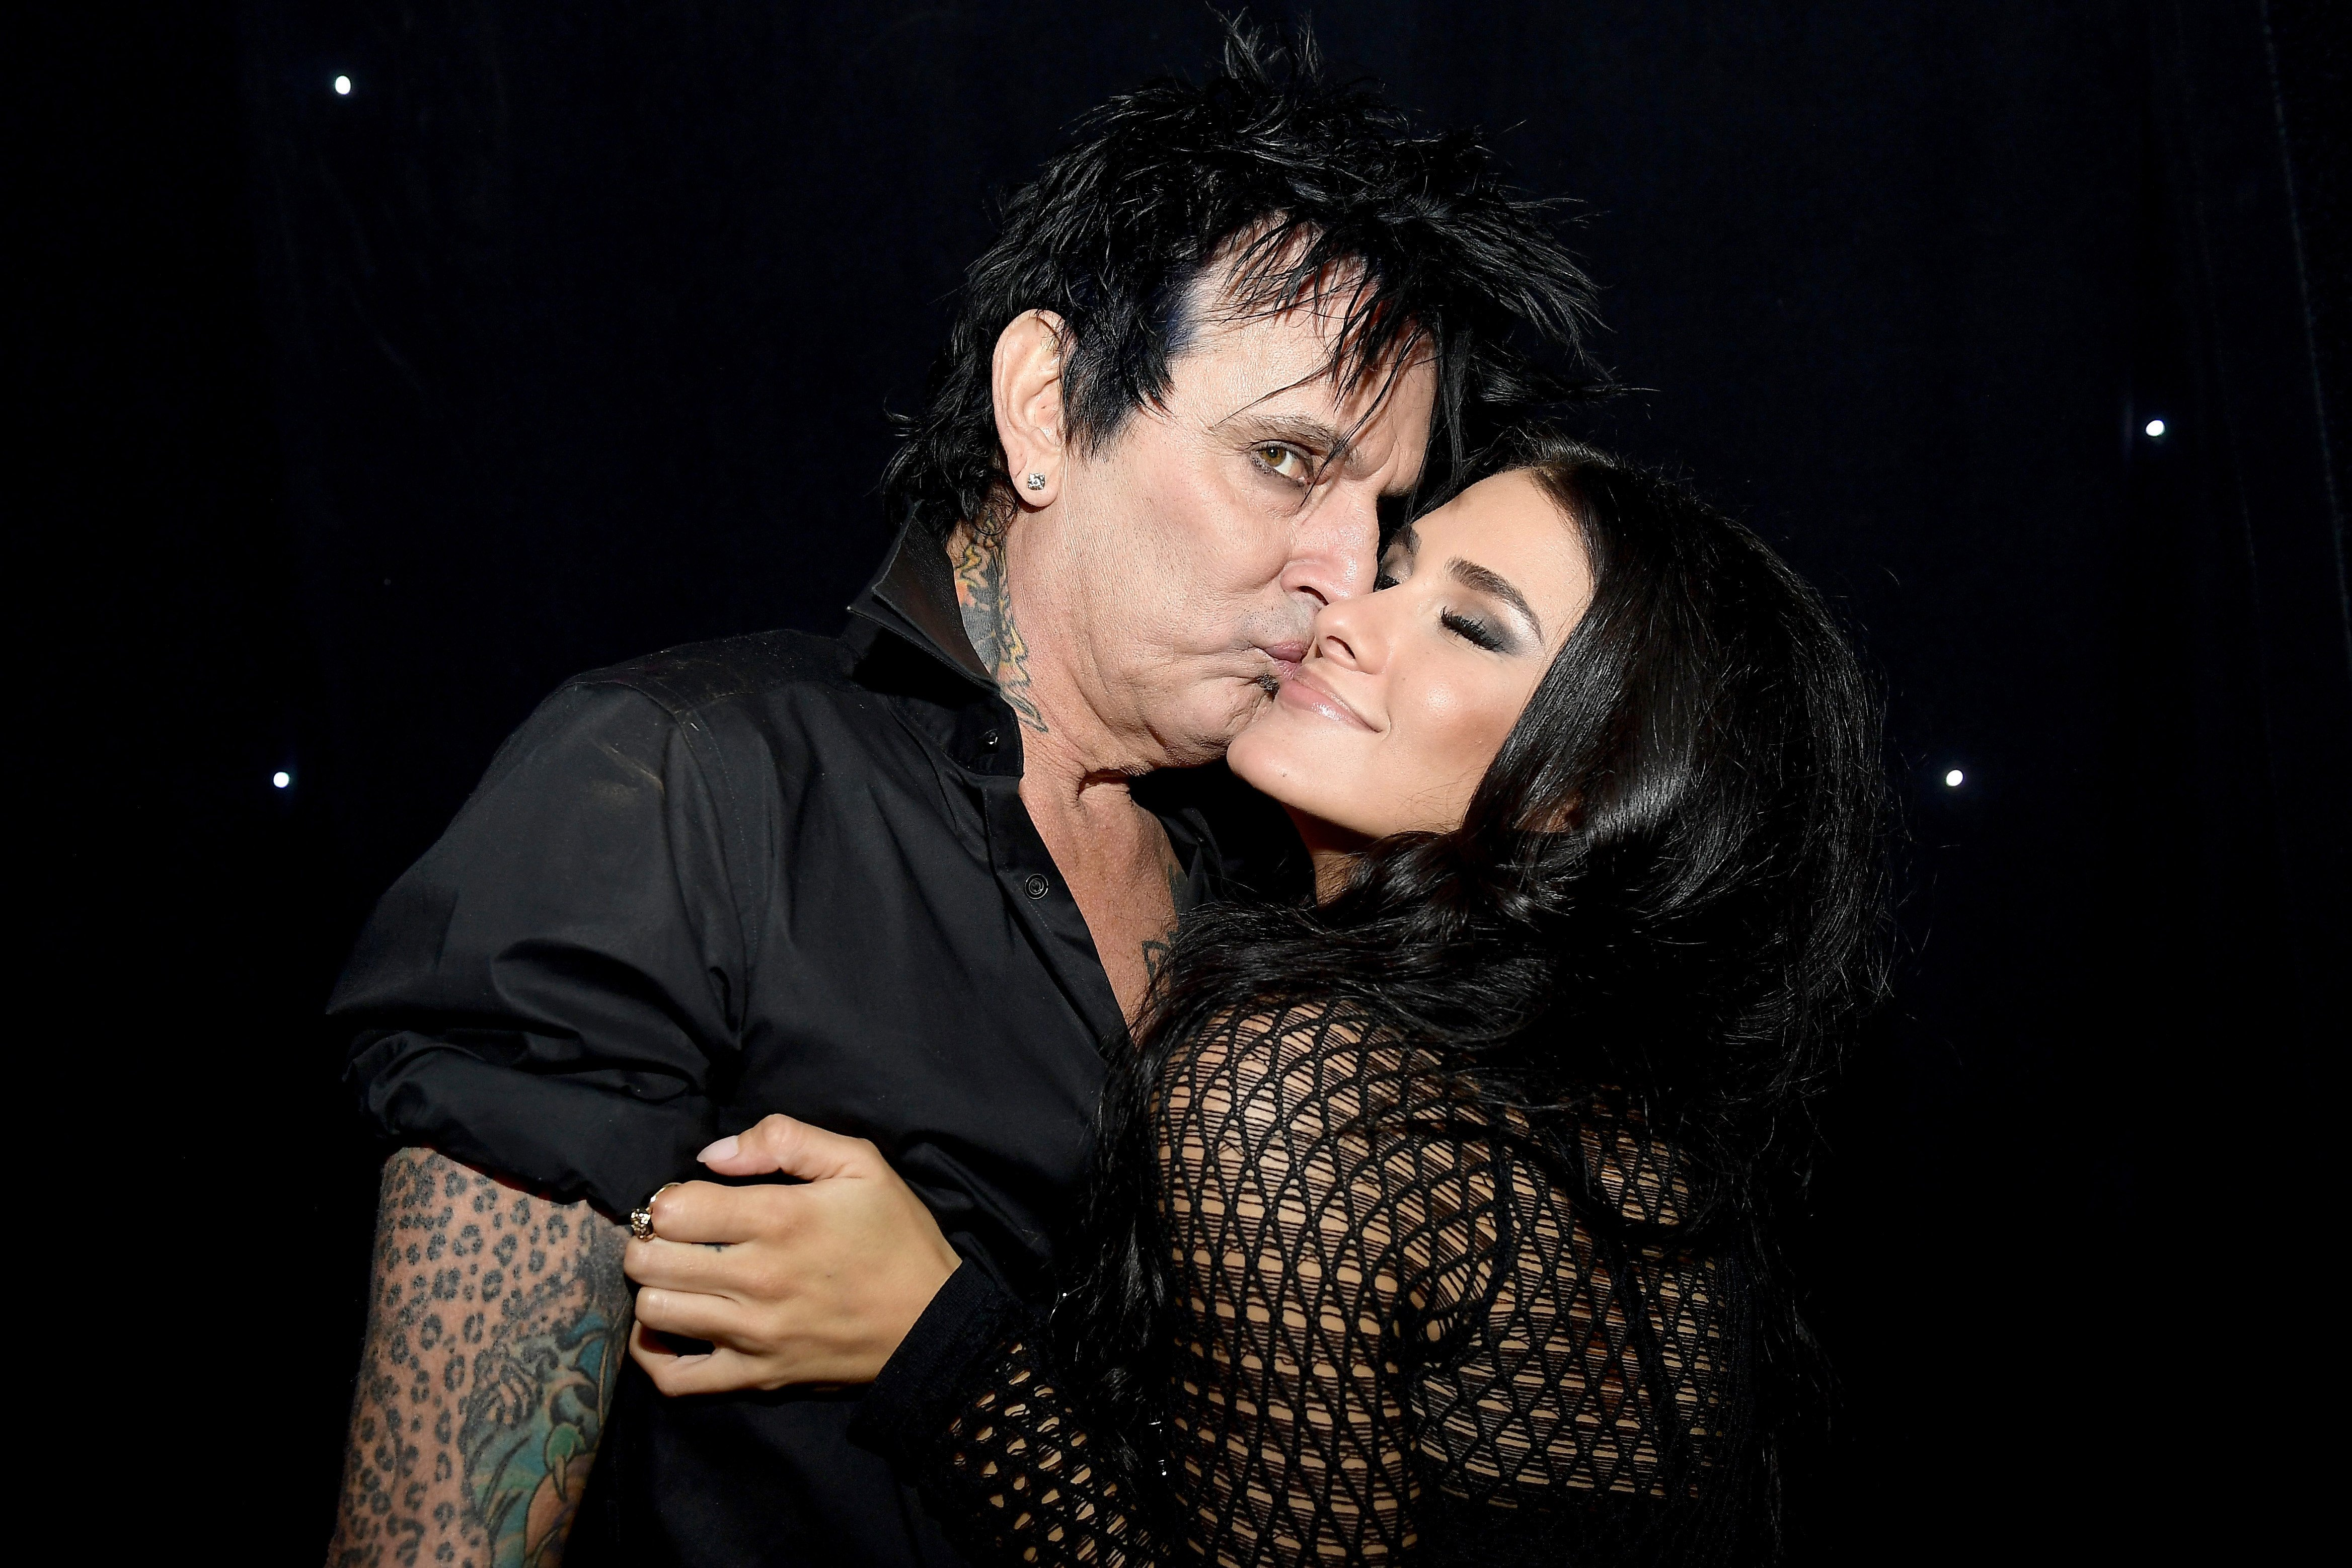 Is Tommy Lee's fiancée a bad influence?